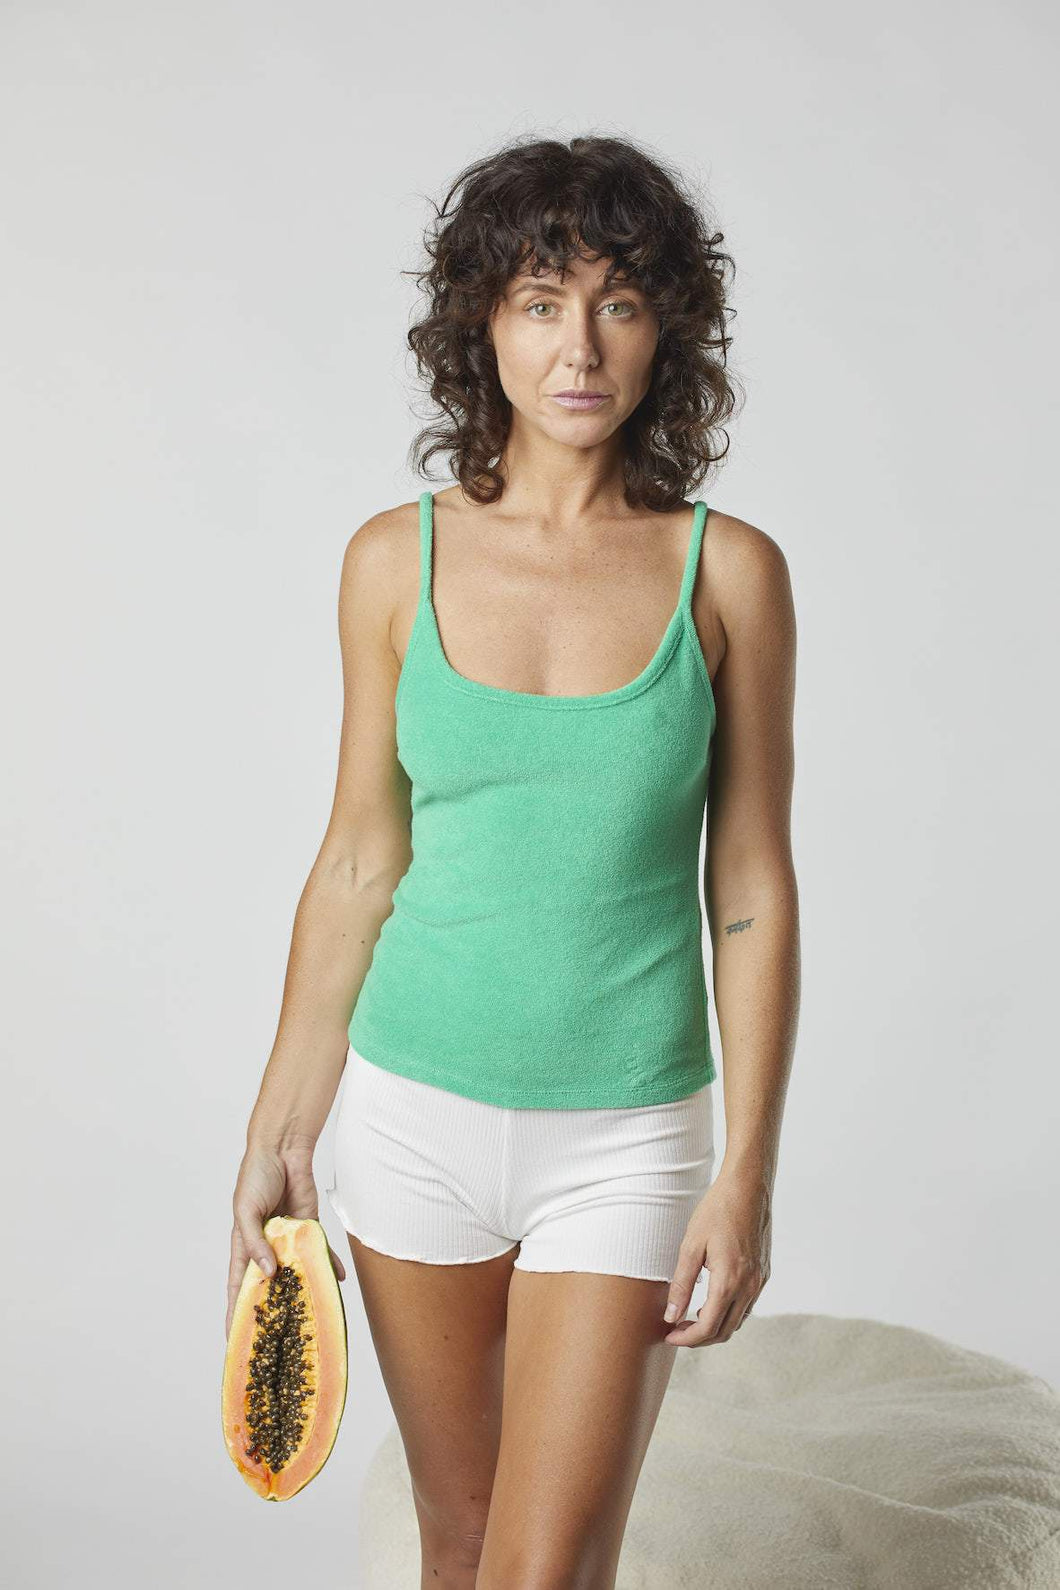 SUMMI SUMMI - TERRY KIRBY SINGLET - KIWI FRUIT